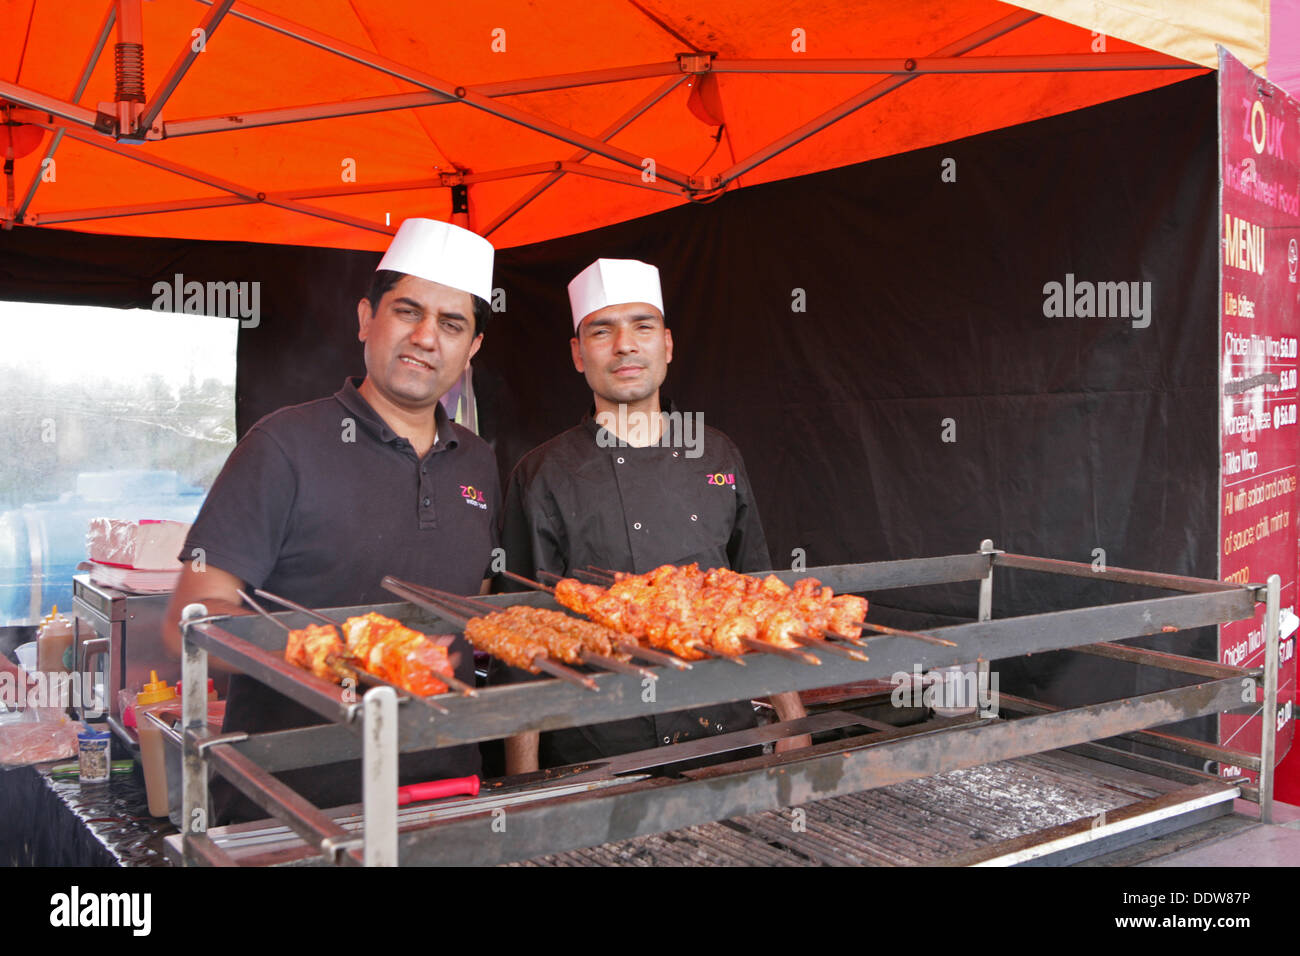 Stratford, UK. 7th September 2013. Kebab food stall at the National Paralympic Day Credit: Keith larby/Alamy Live News - Stock Image